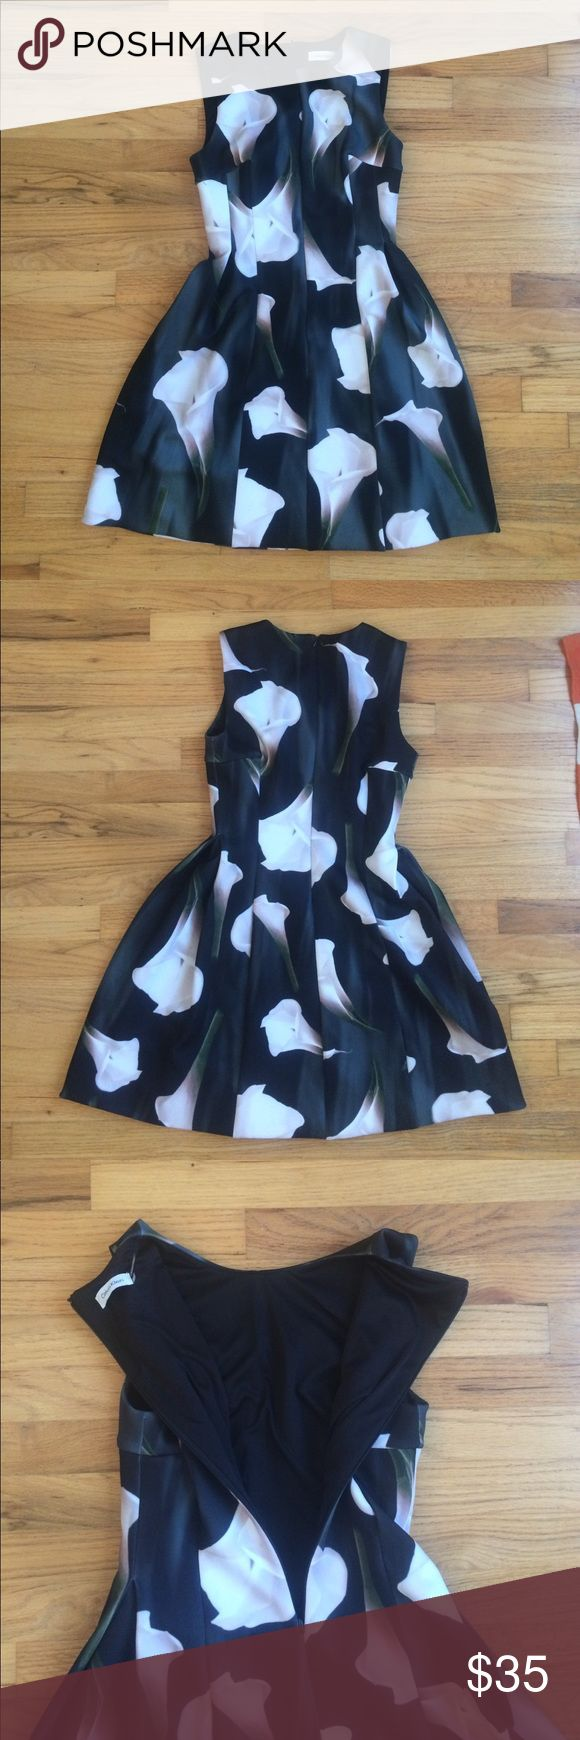 "Calvin Klein Tulip Dress w/Calla Lilly print Size 4 - Calvin Klein - fully lined -  35"" bust (fit me 34B perfectly) - 28"" waist - 35"" length (shoulder to hem) Scuba like stretch material - pleats at the waist - no damage! - smoke free pet free home - Calvin Klein Dresses Midi"